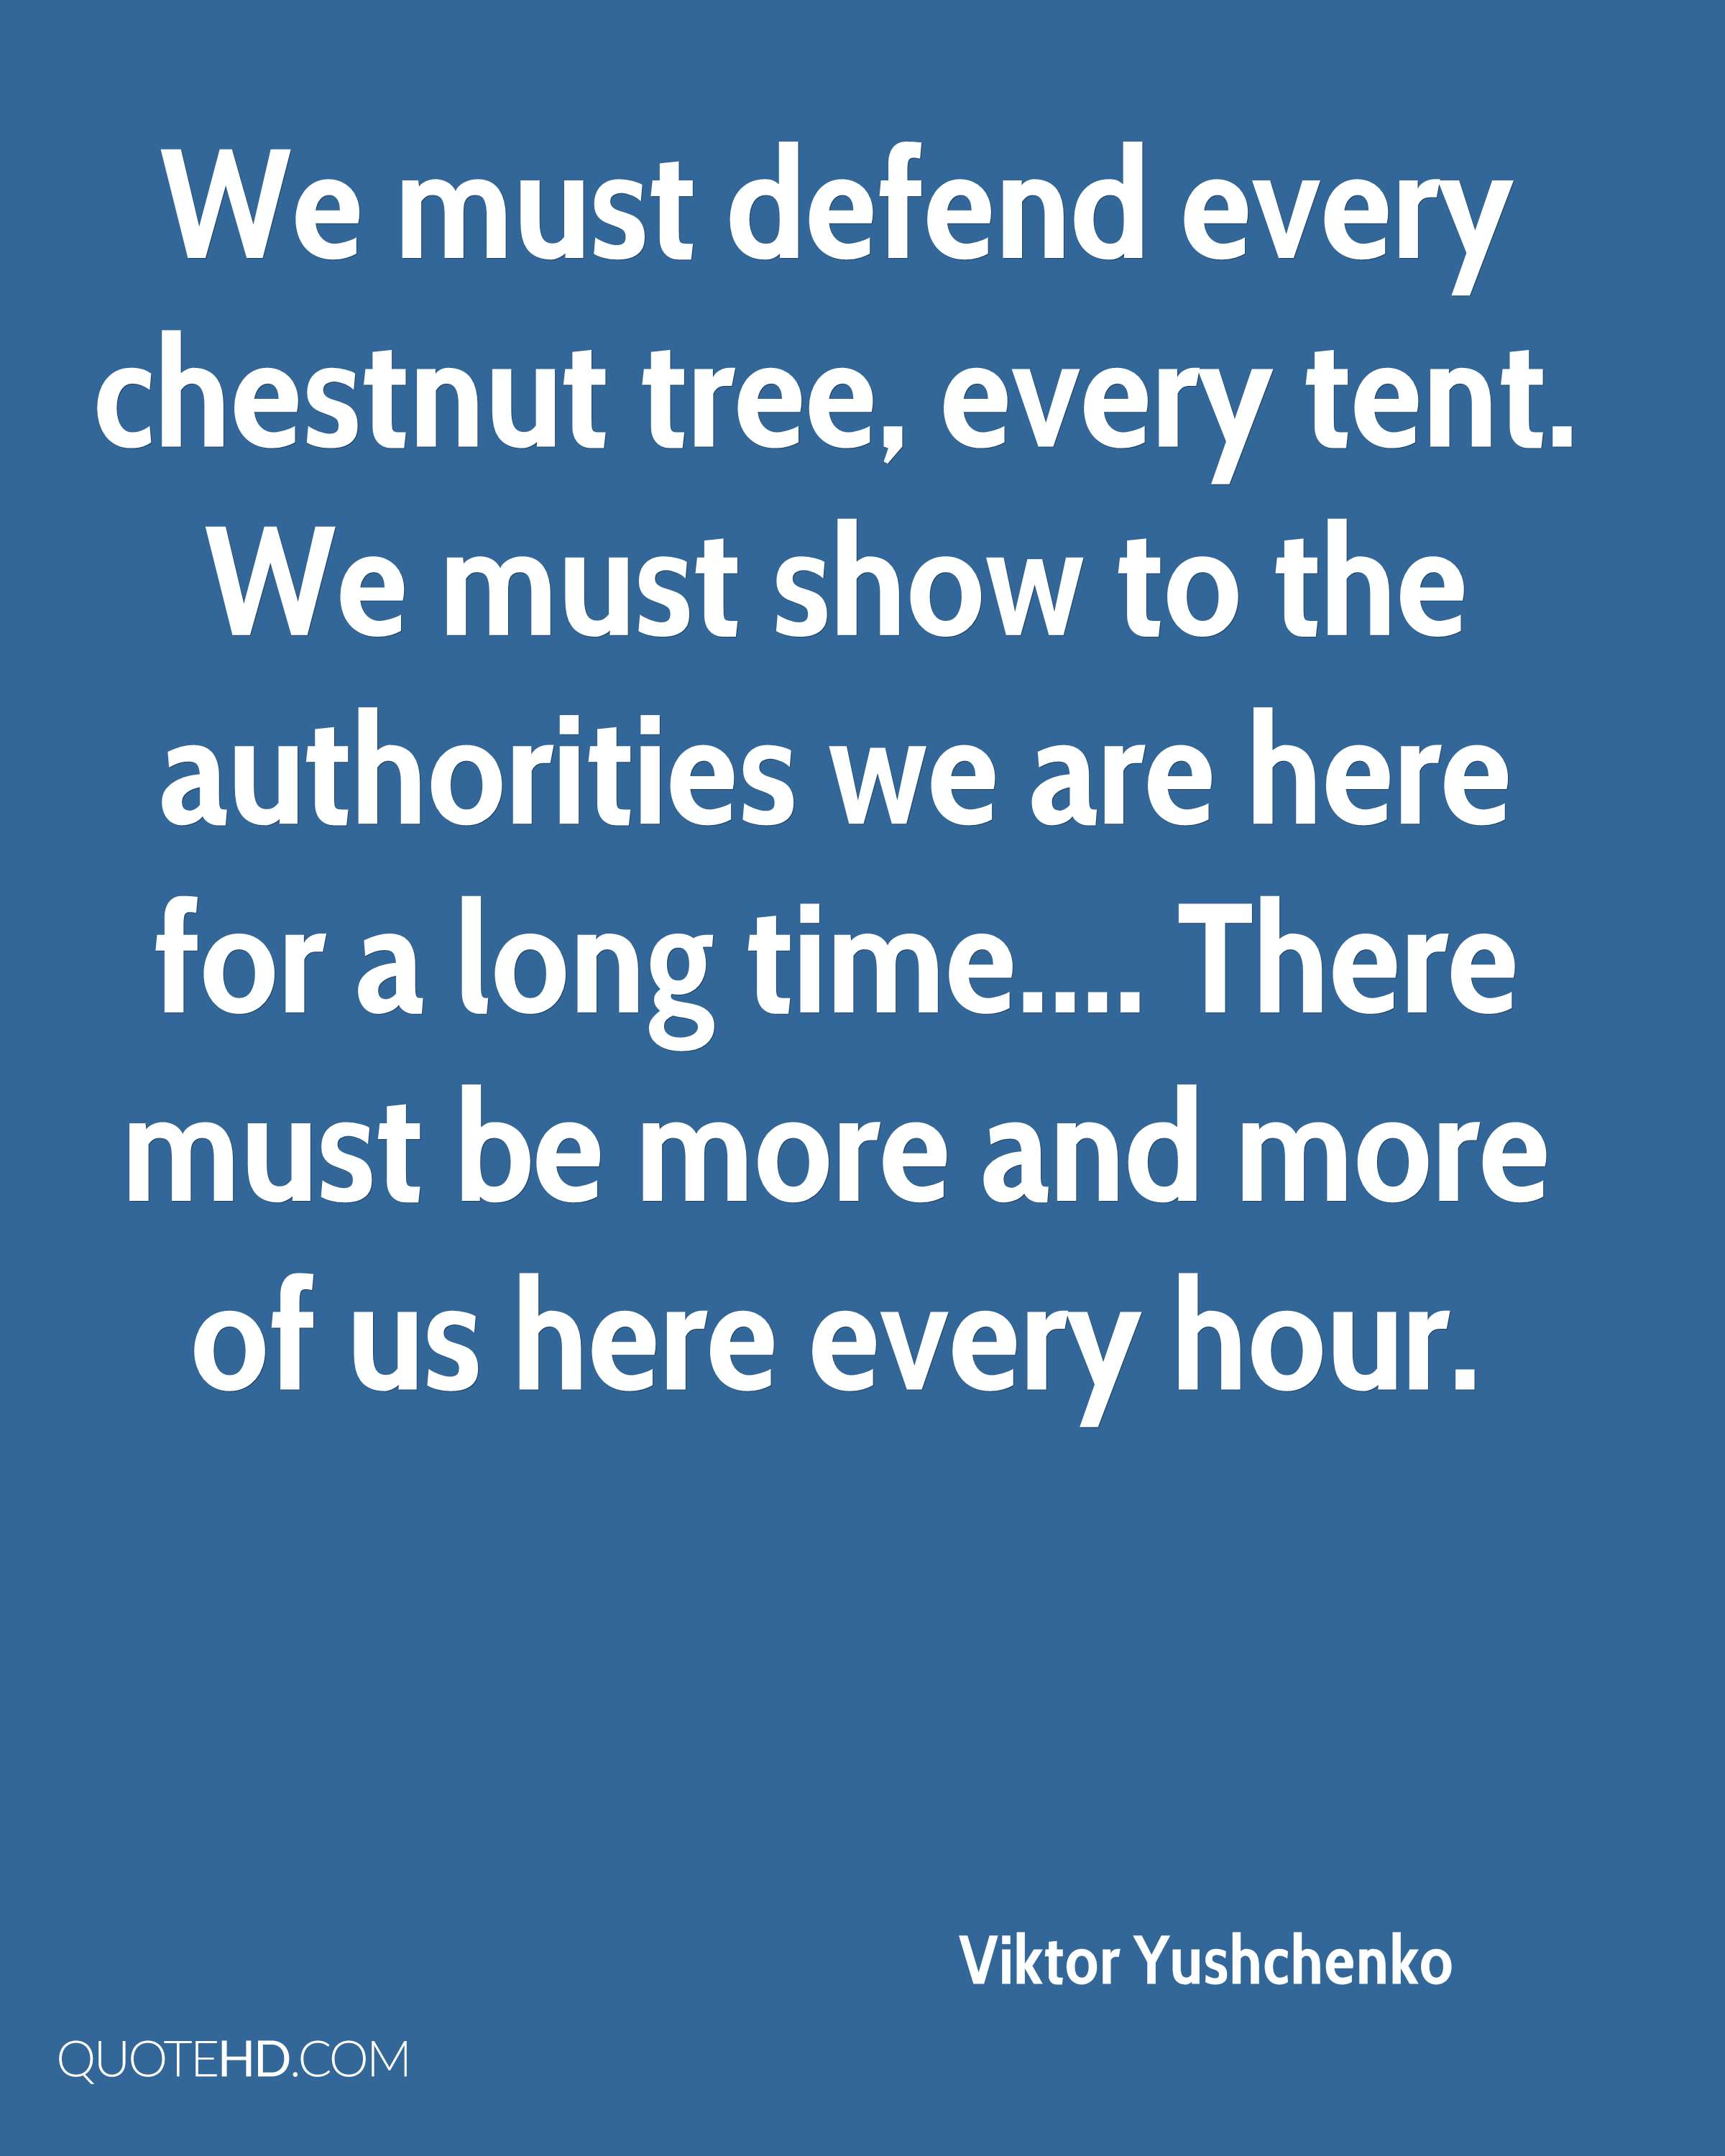 We must defend every chestnut tree, every tent. We must show to the authorities we are here for a long time.... There must be more and more of us here every hour.